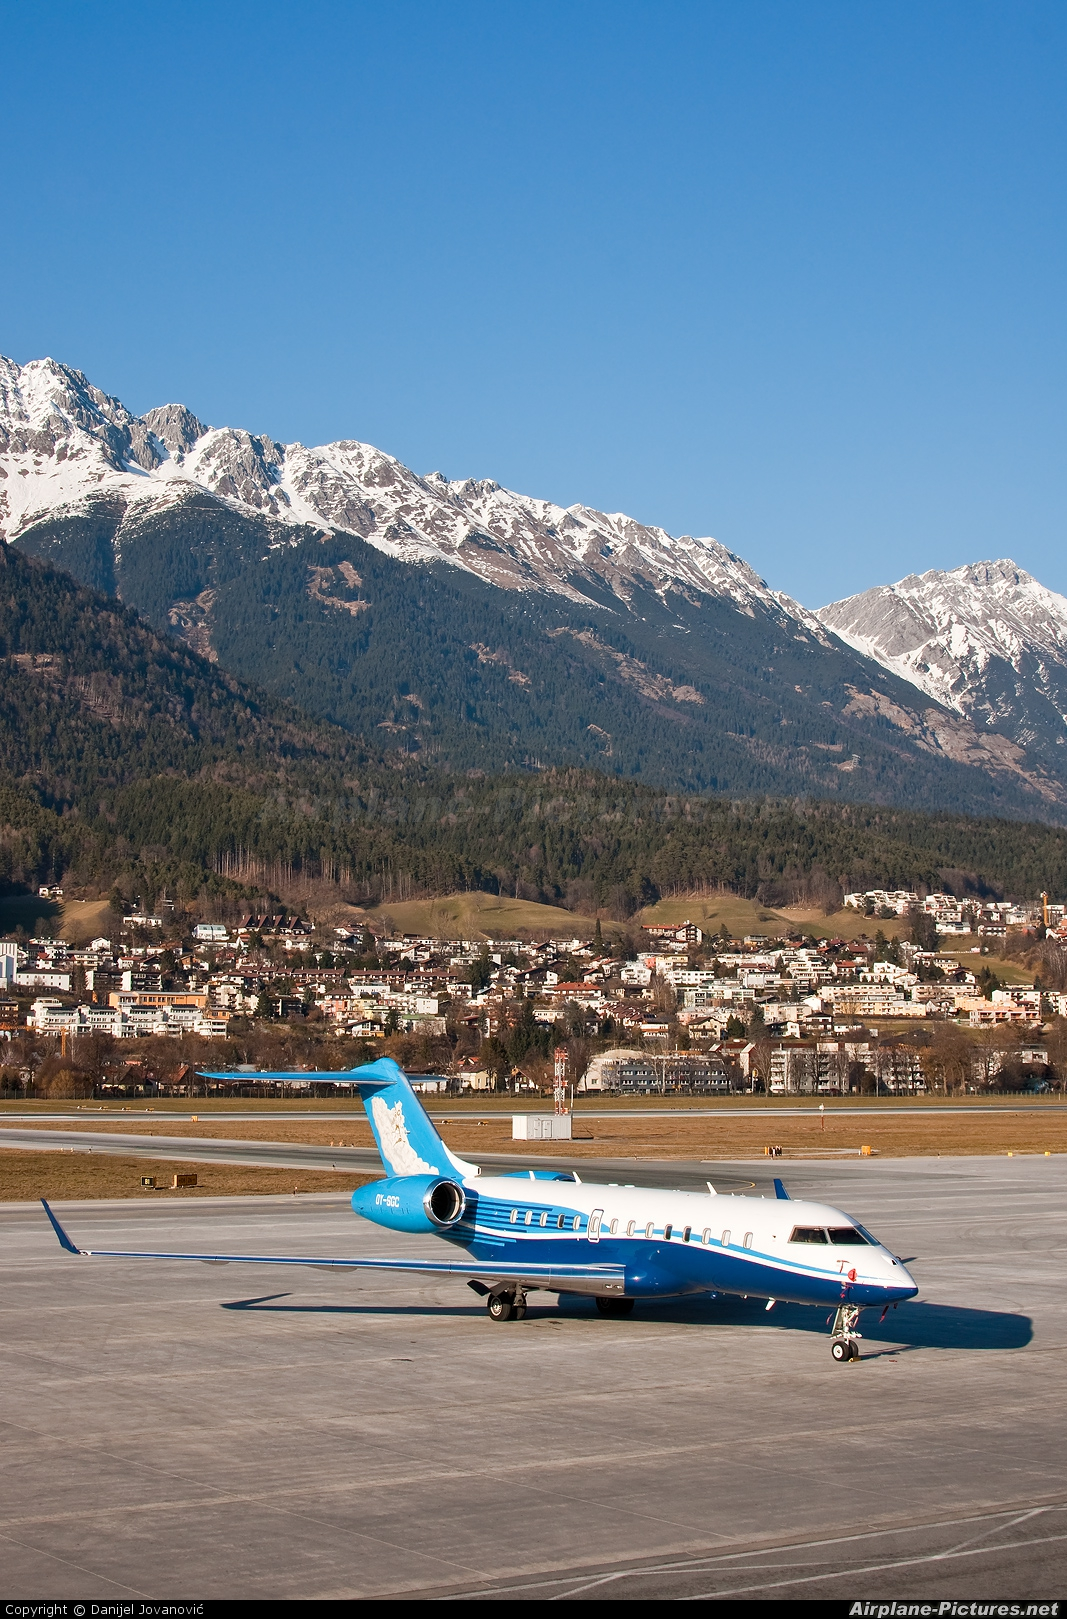 Execujet Europa AS OY-SGC aircraft at Innsbruck